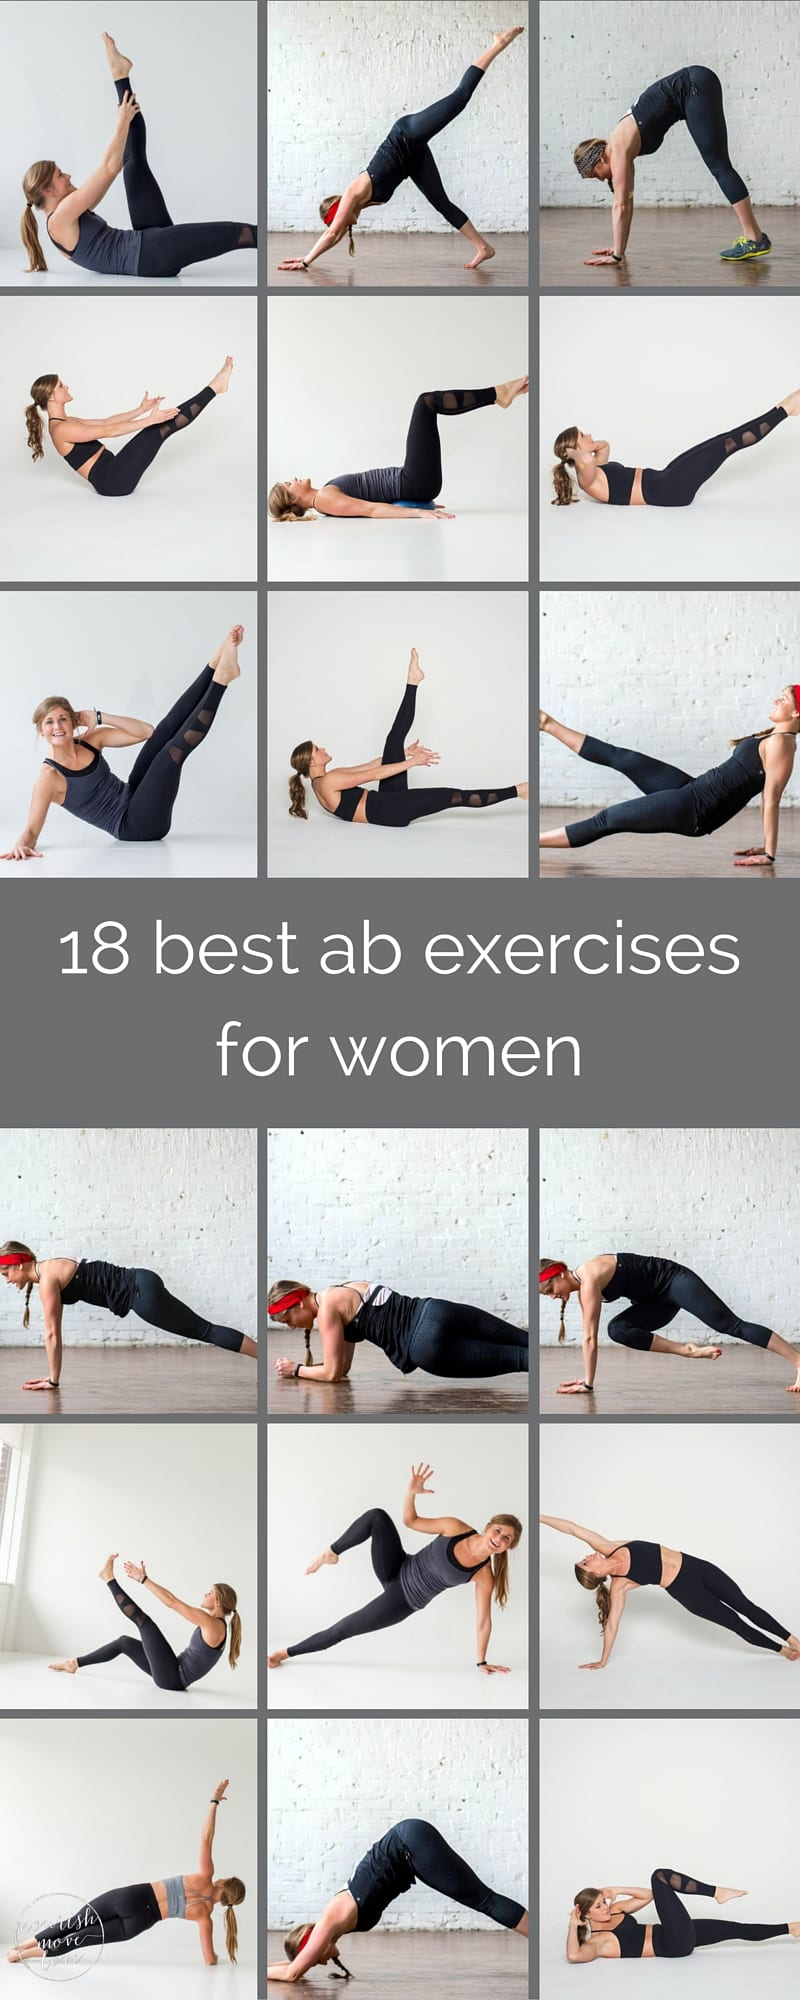 18 Best Best Gifts For 19 Year Old Girls Images On: 18 Best Ab Exercises For Women